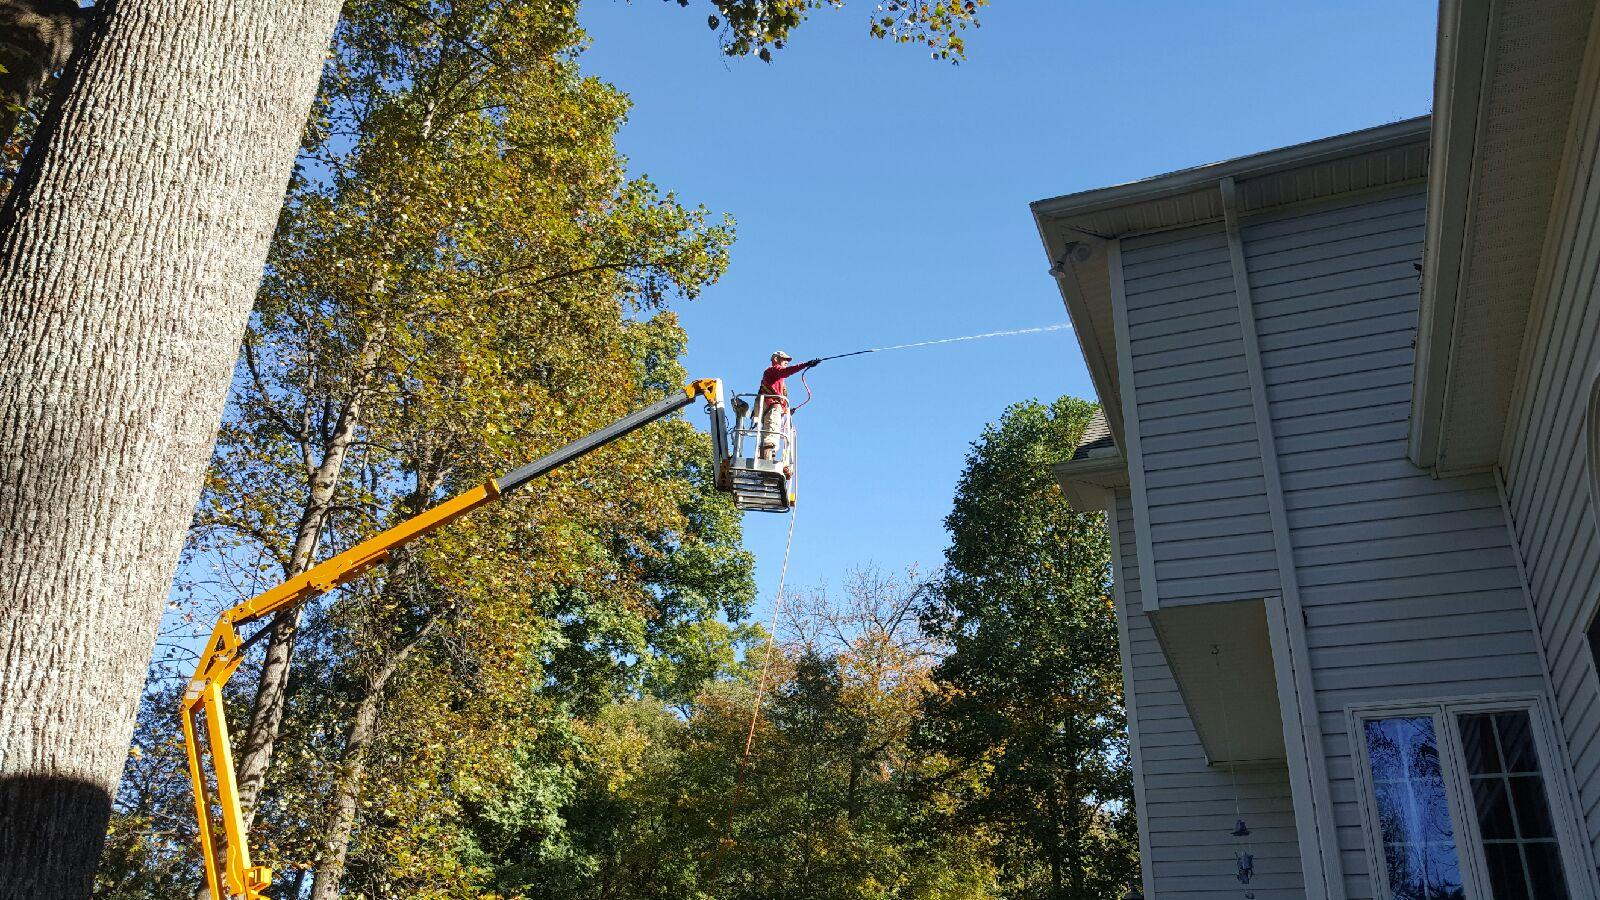 Boom Lift | Sidewalk Cleaning Service in Greencastle PA